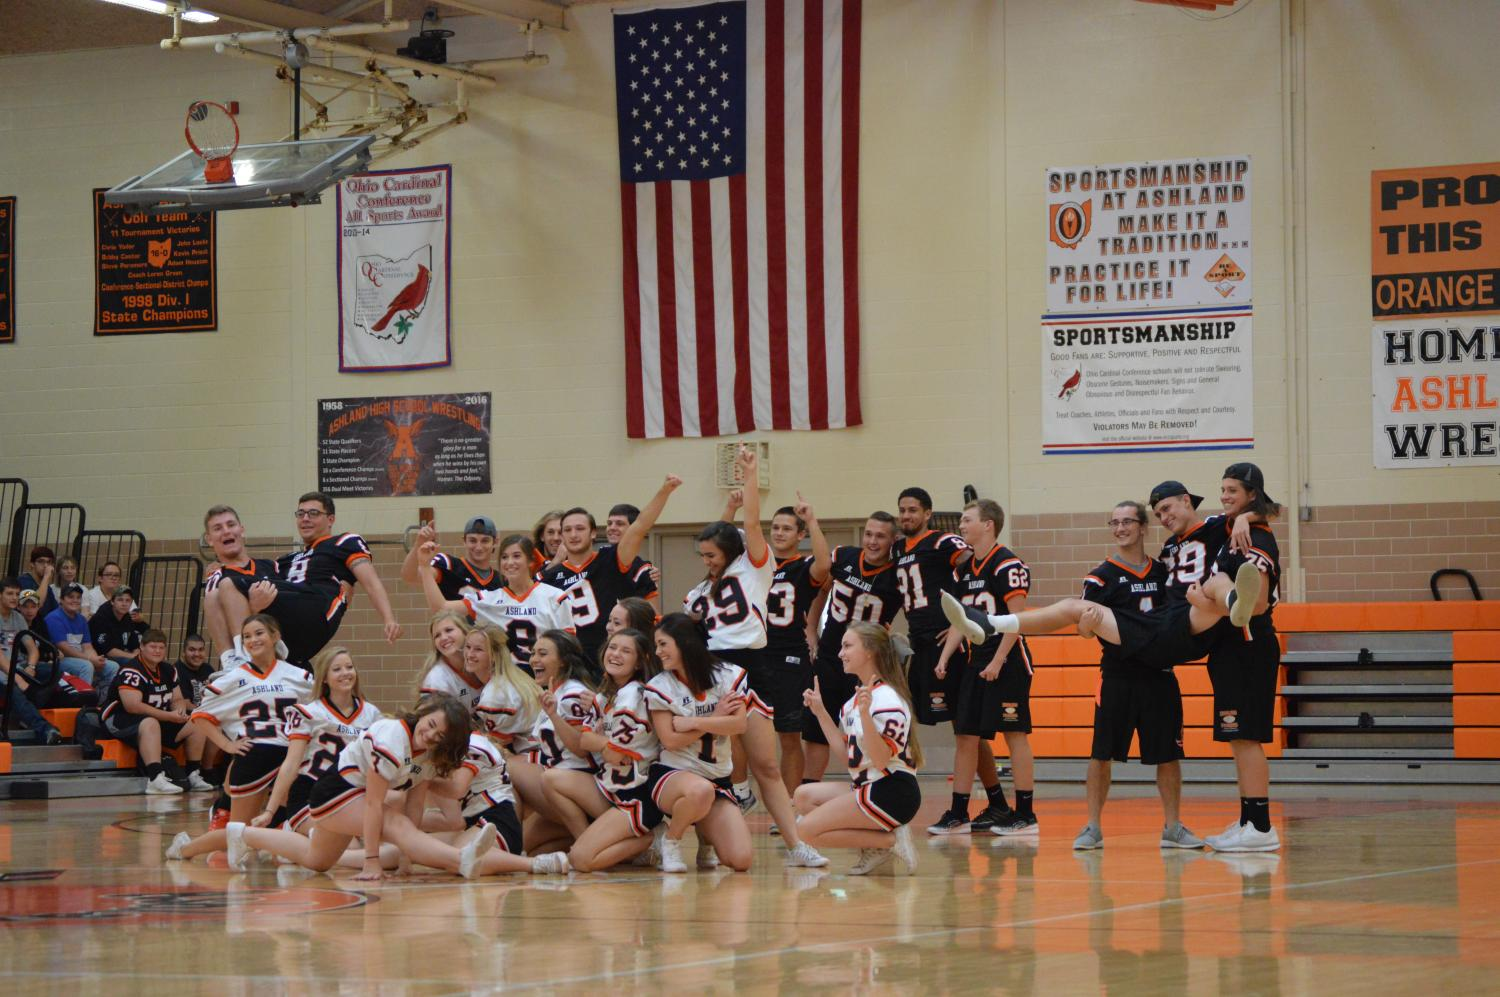 Ashland High School football players and cheerleaders dance to a medley during the homecoming assembly.